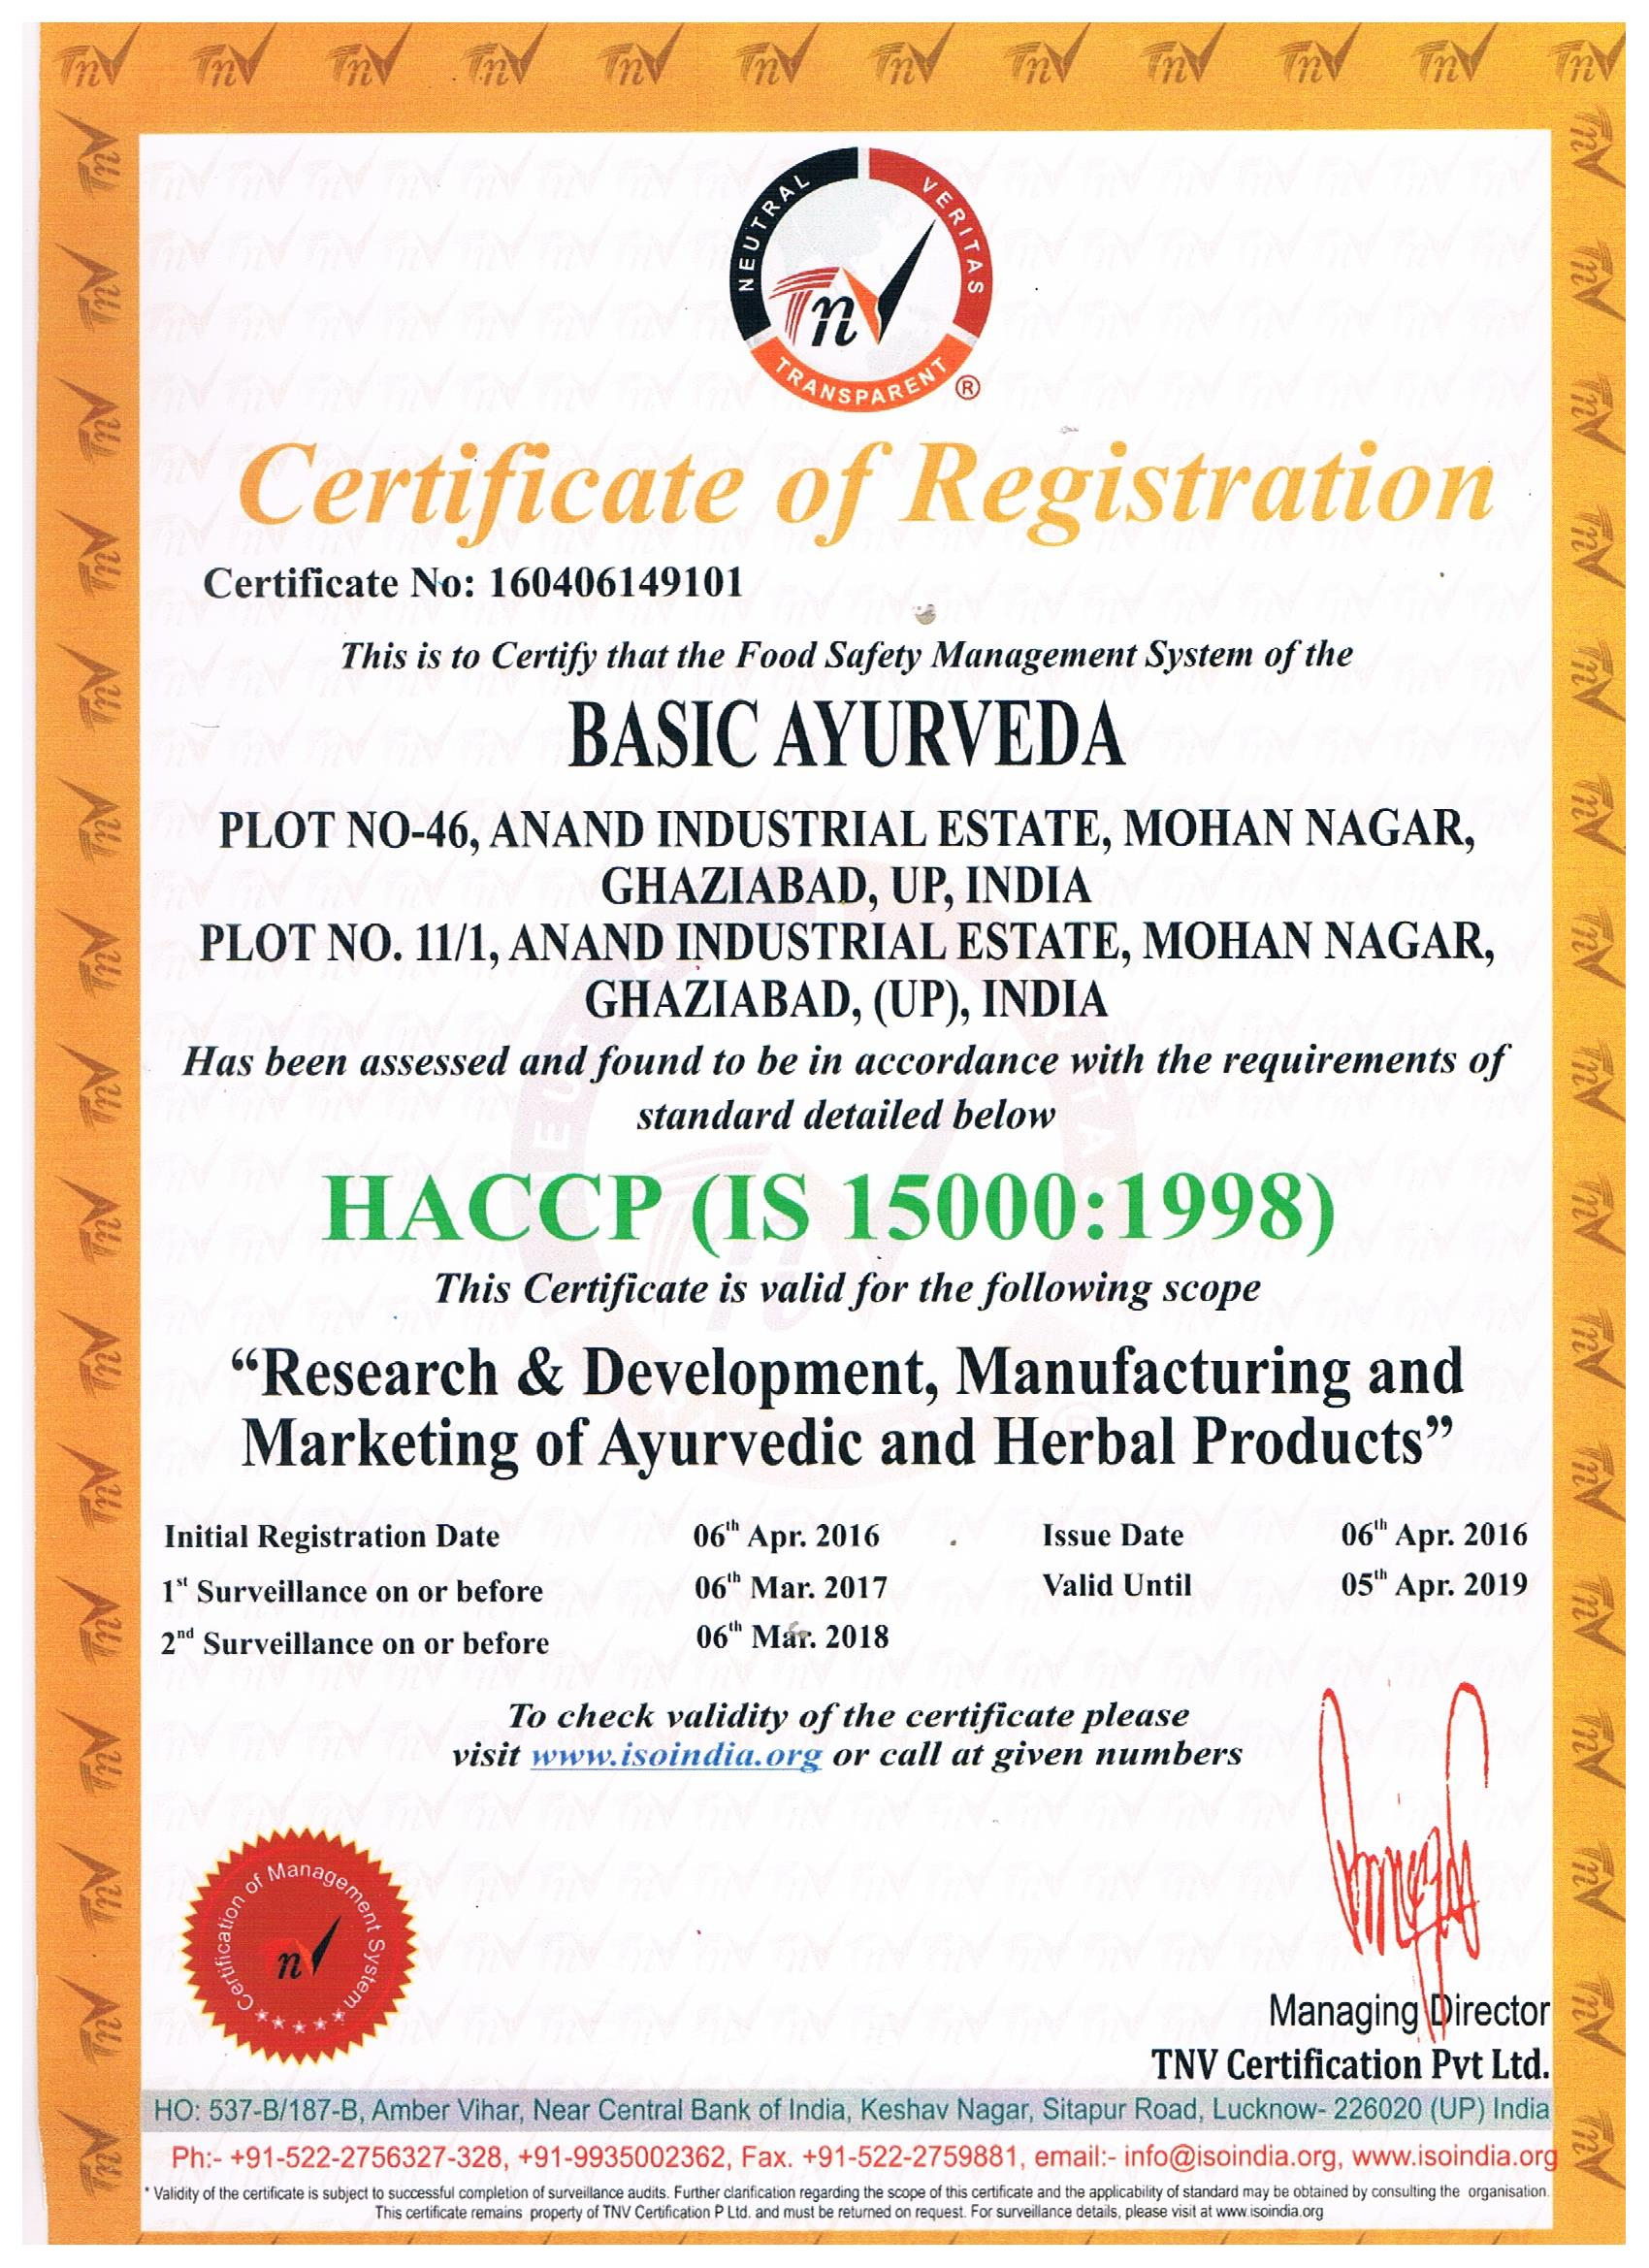 Herbal medicines herbal healthcare products ayurvedic supplements certificate view more 1betcityfo Image collections